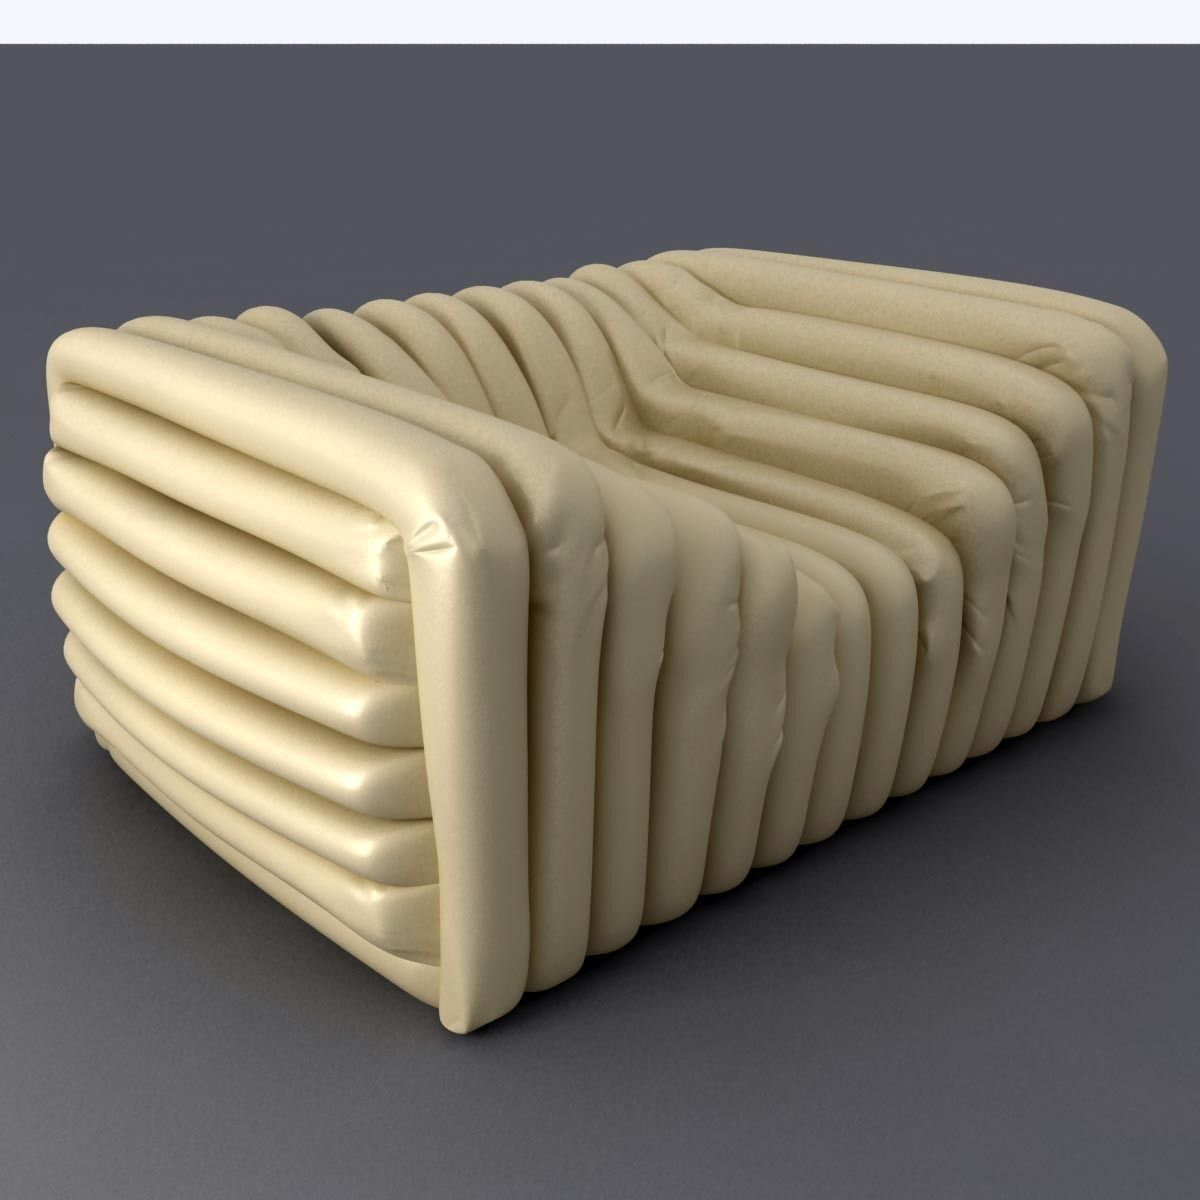 Versace Bubble Sofa 3d Model Max Obj 3ds Fbx Mtl 3 .